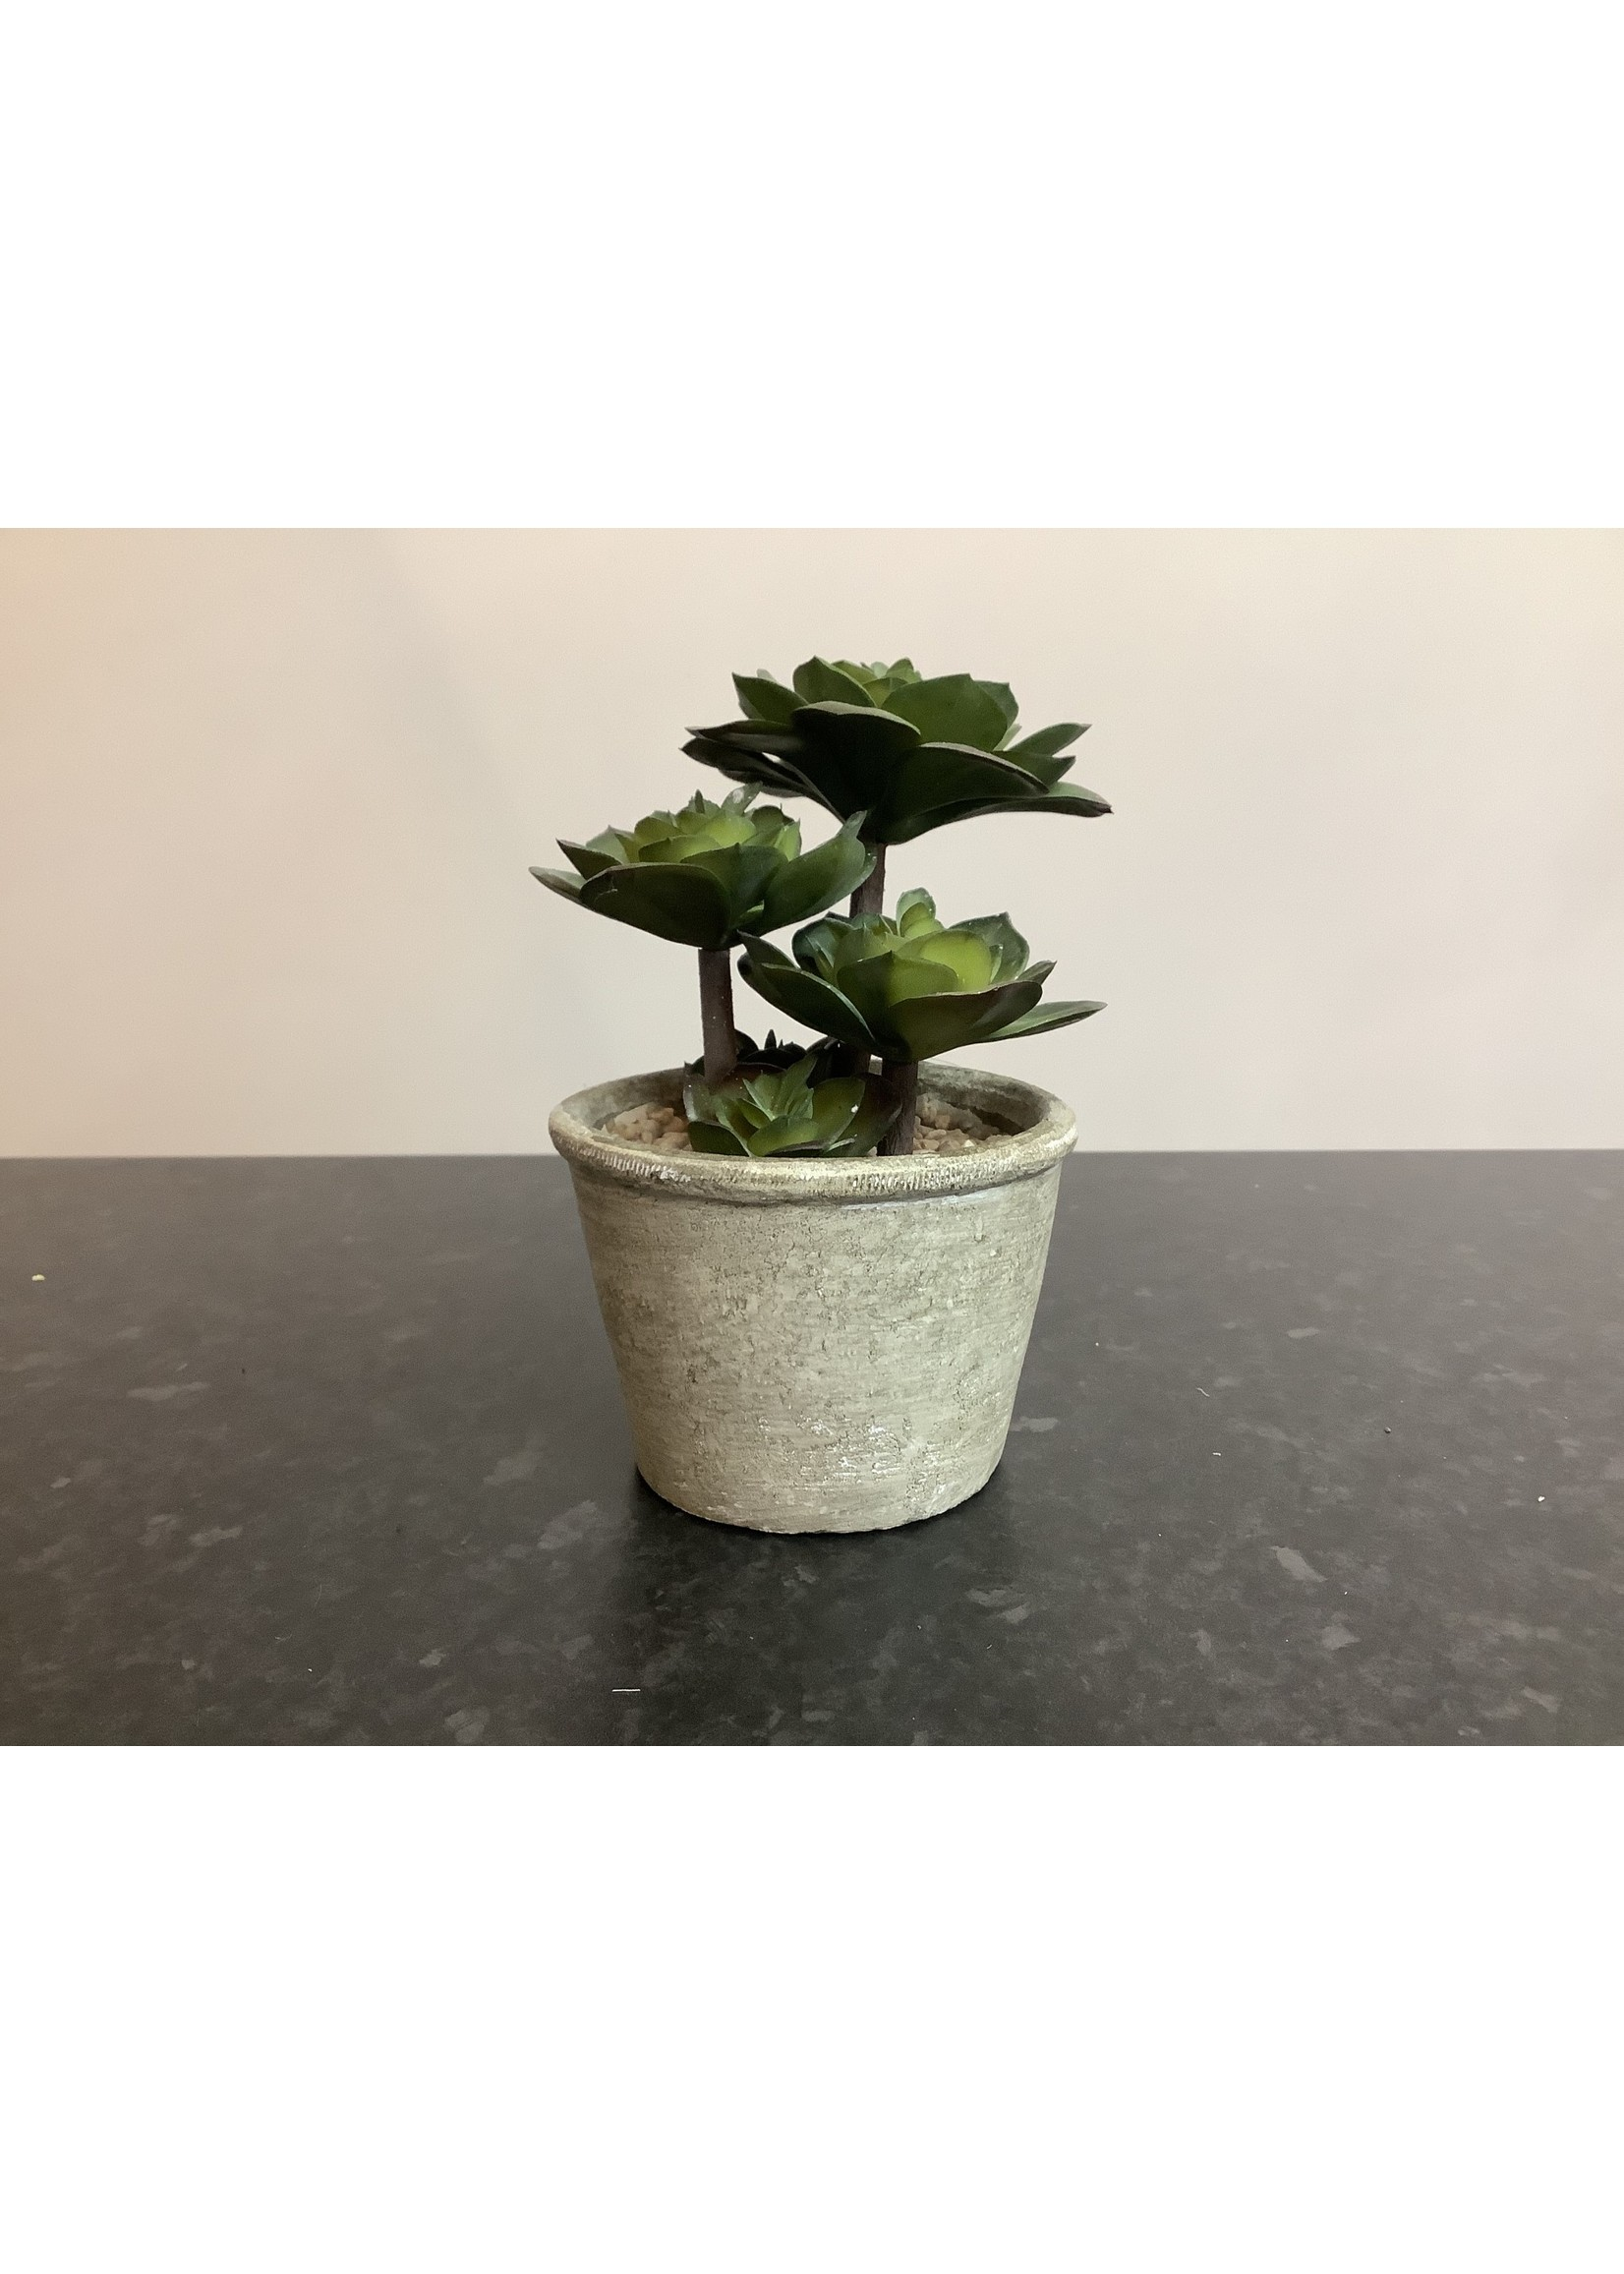 Succulent in small pot 18cm tall